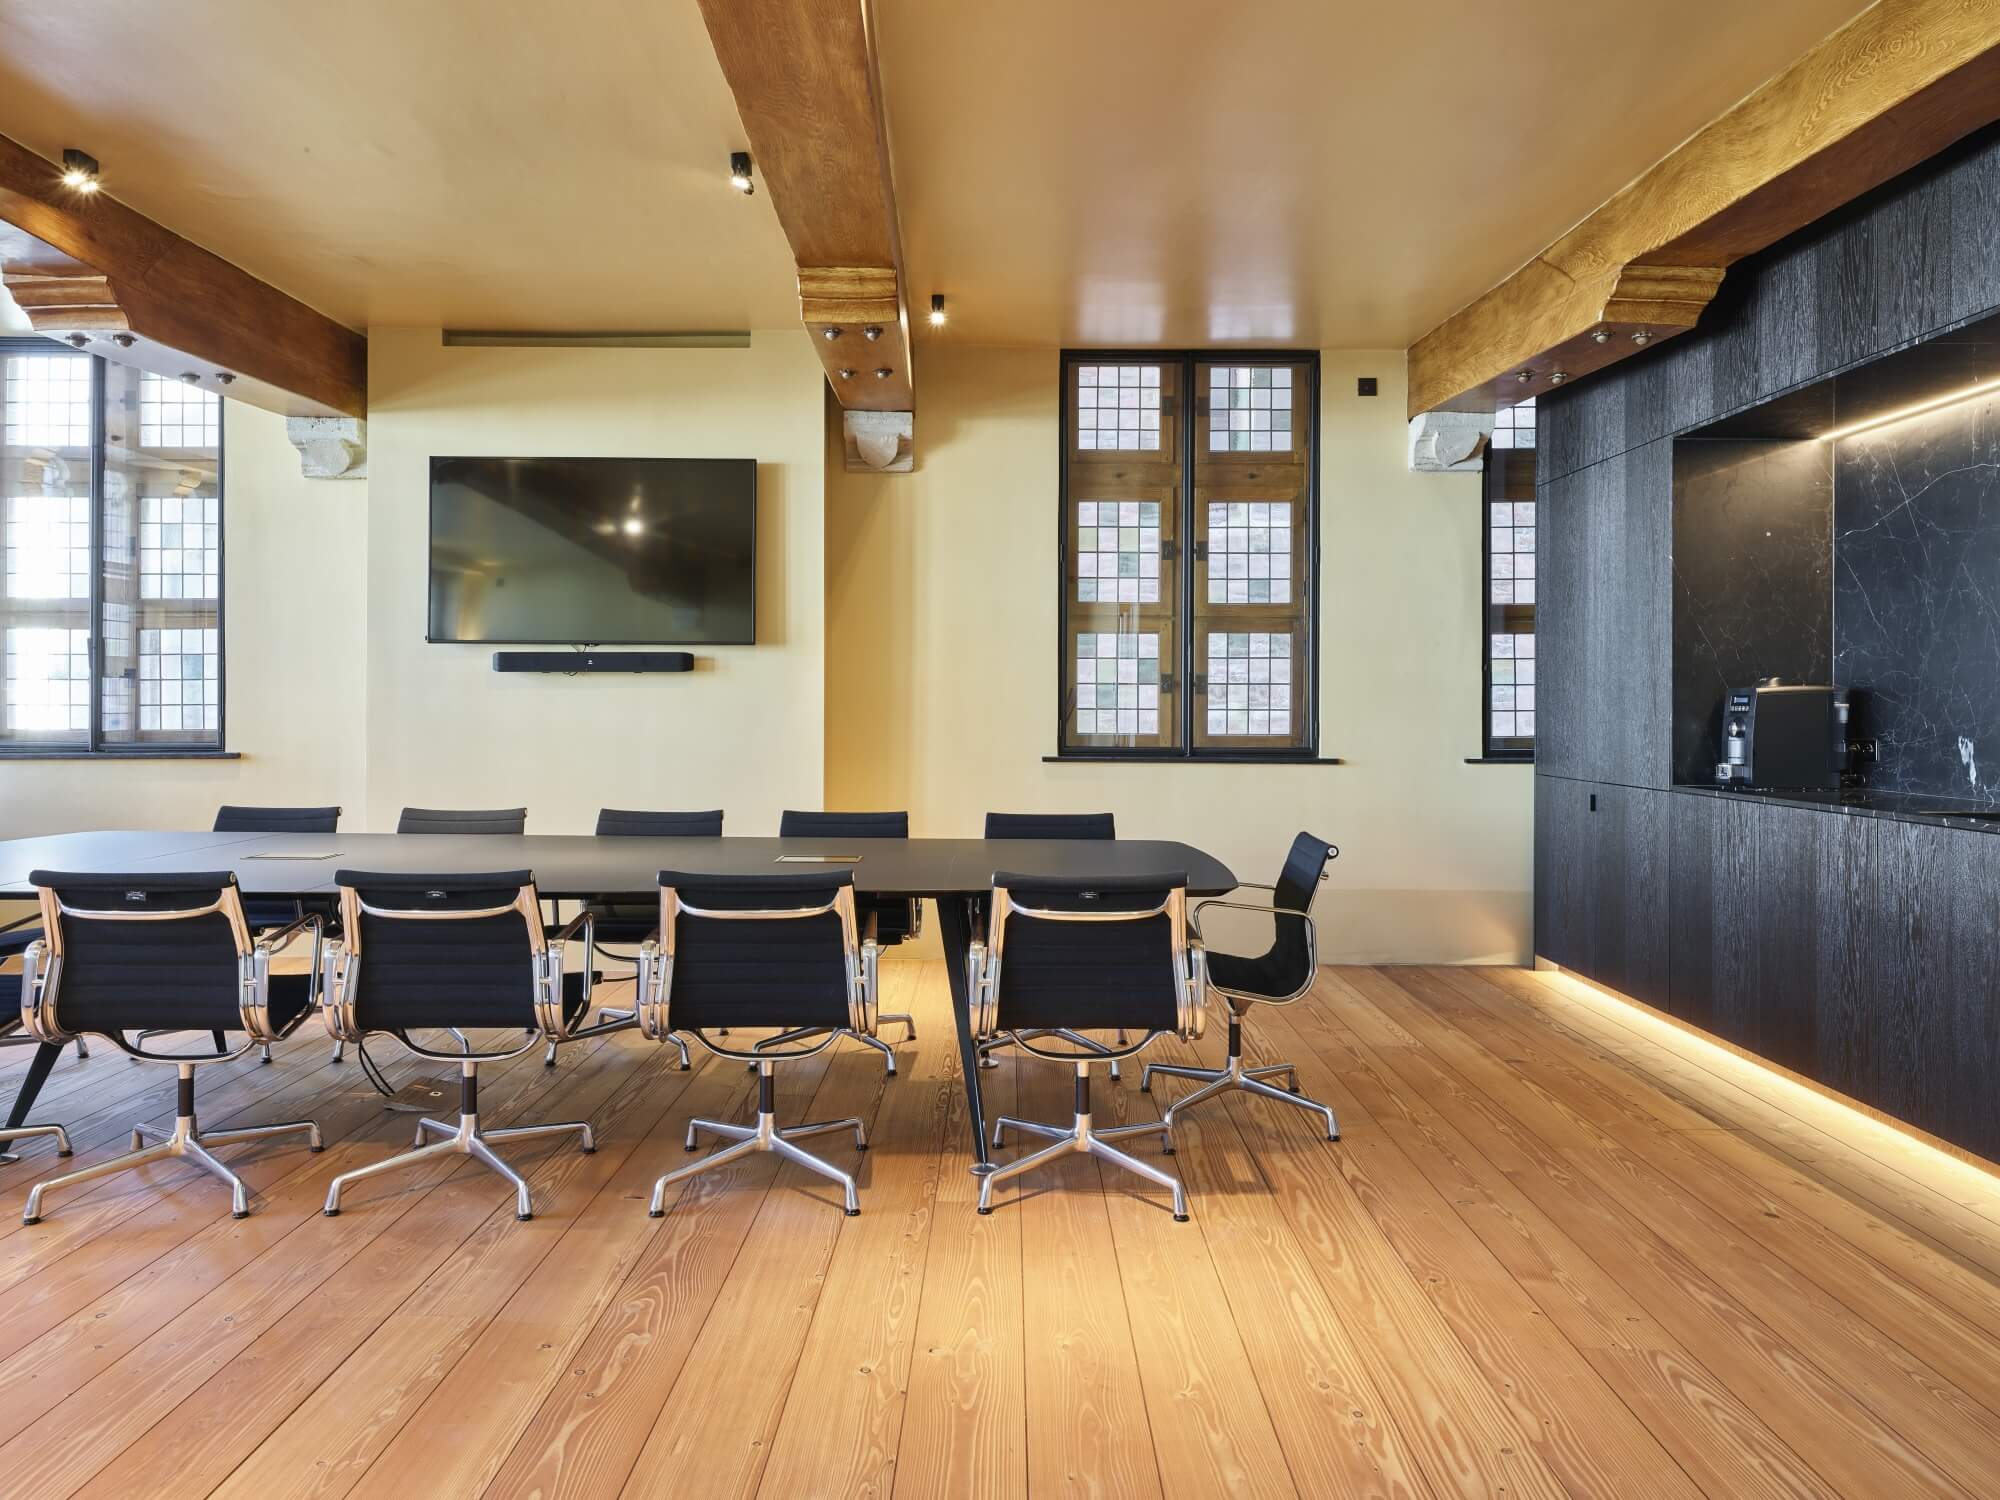 Matte wood floors in an office conference room.